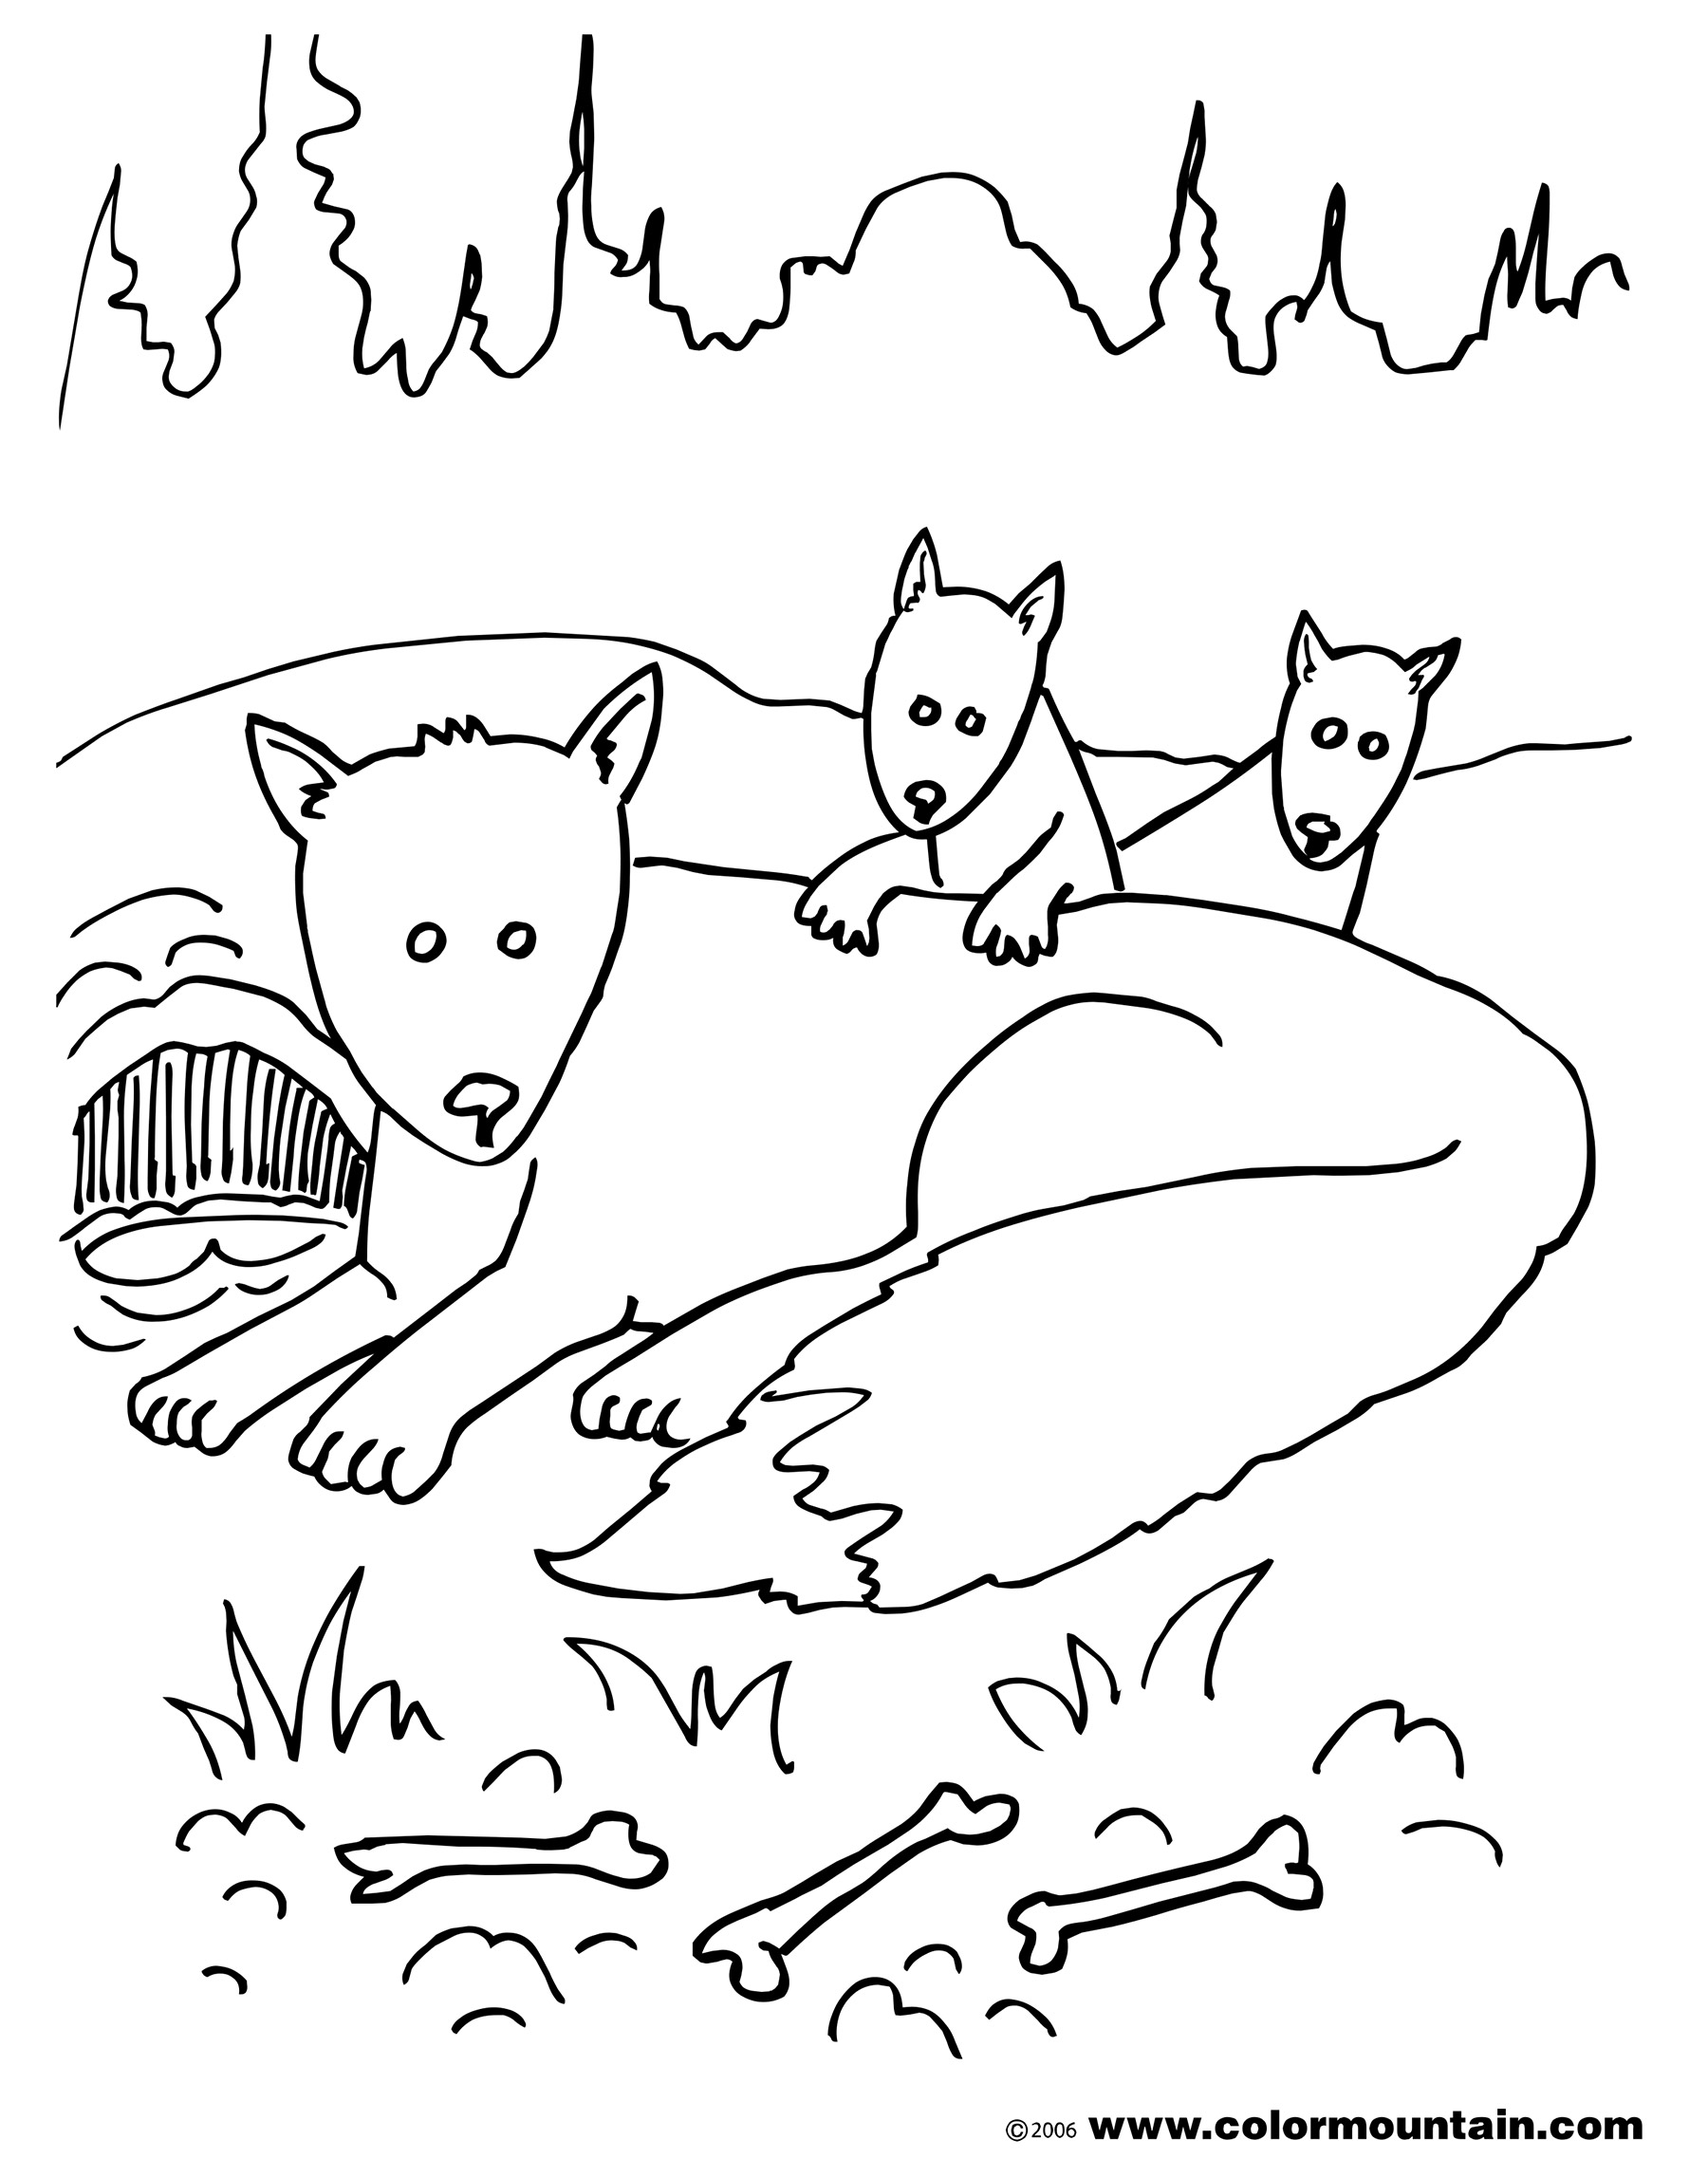 Fantastic Mr Fox Coloring Pages At Getcolorings